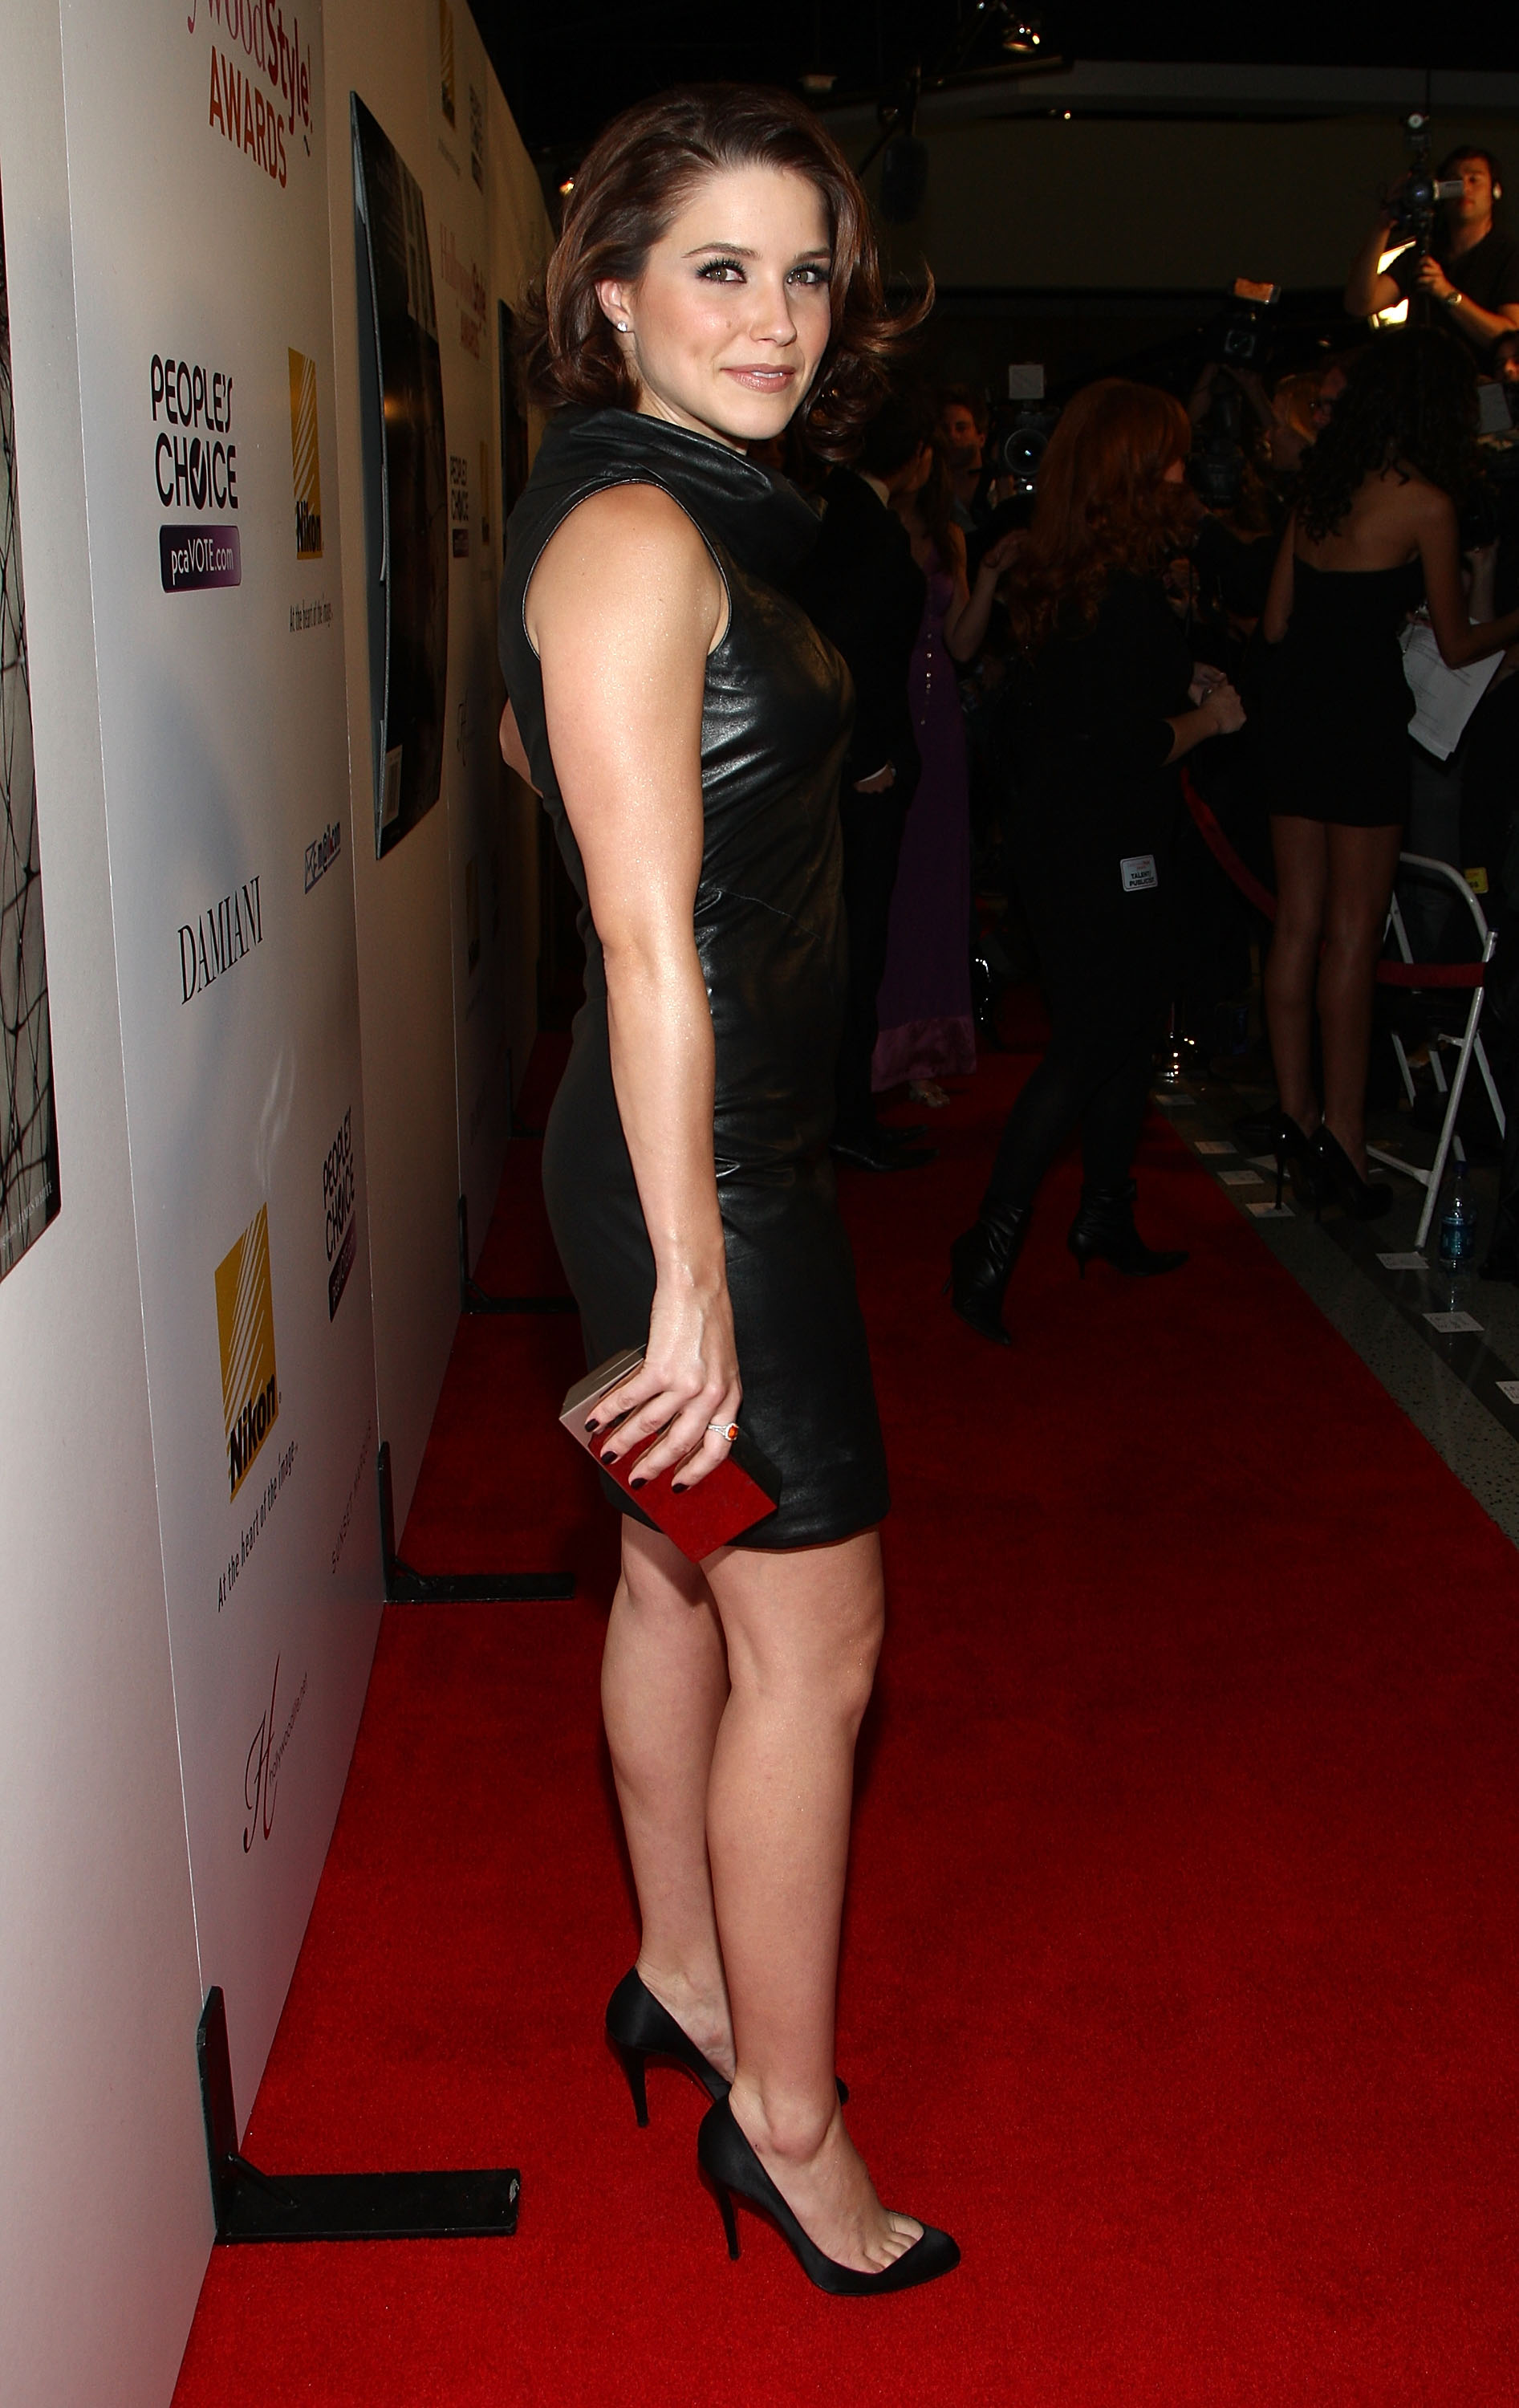 96359_Celebutopia-Sophia_Bush-Hollywood_Life06s_5th_annual_Hollywood_Style_Awards-05_122_116lo.jpg